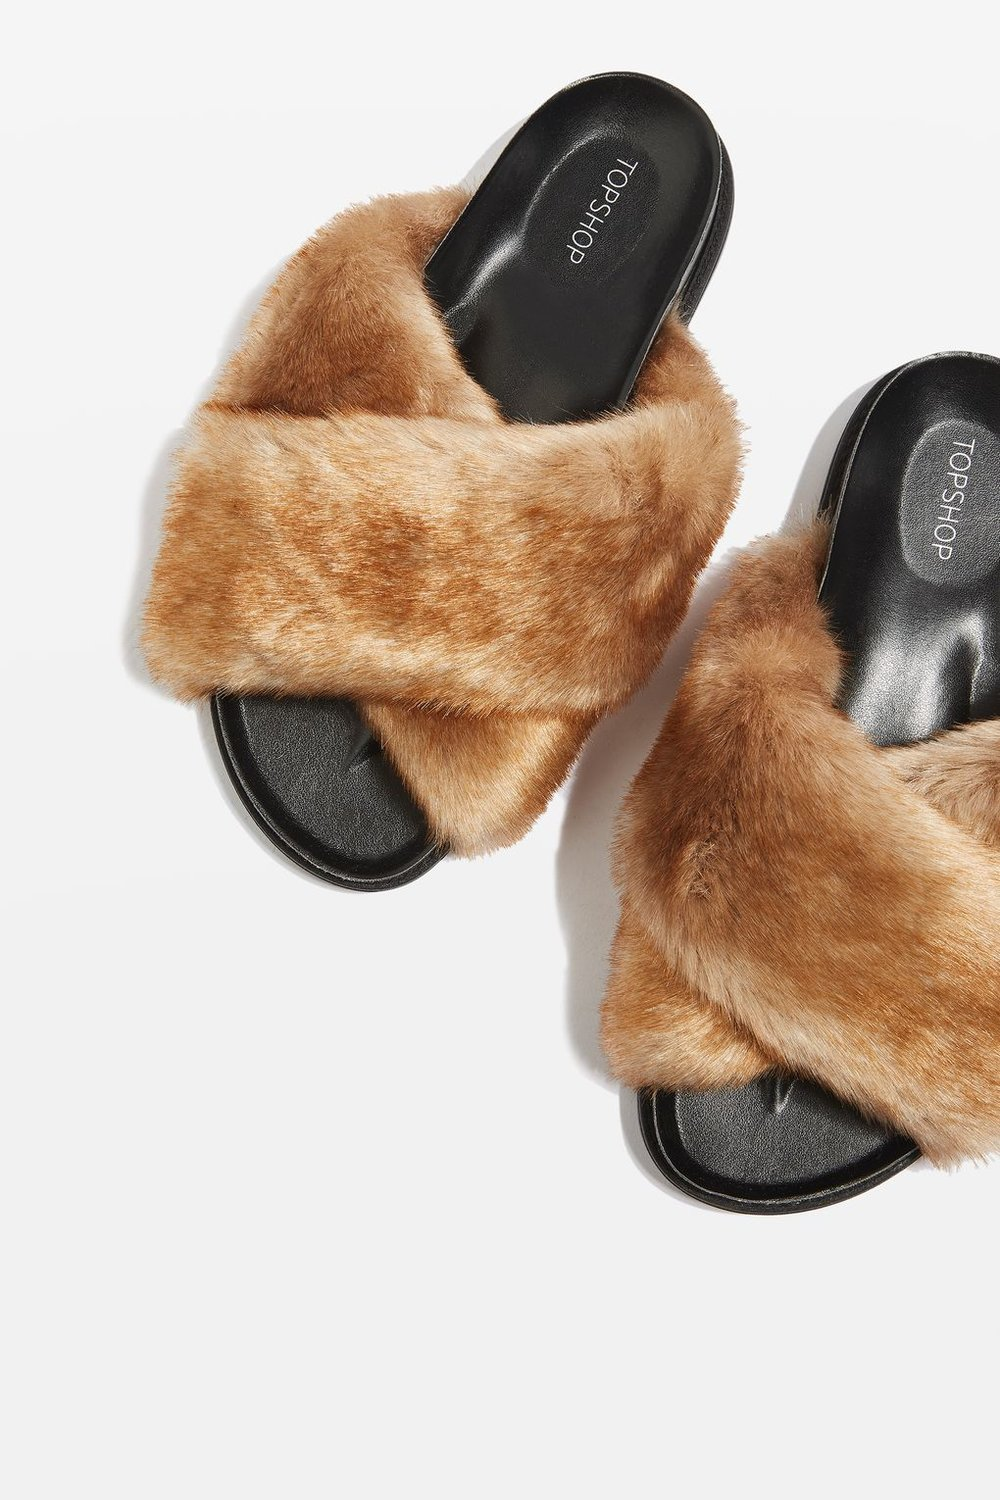 At Topshop, 40 euros gets you these bushy slides.